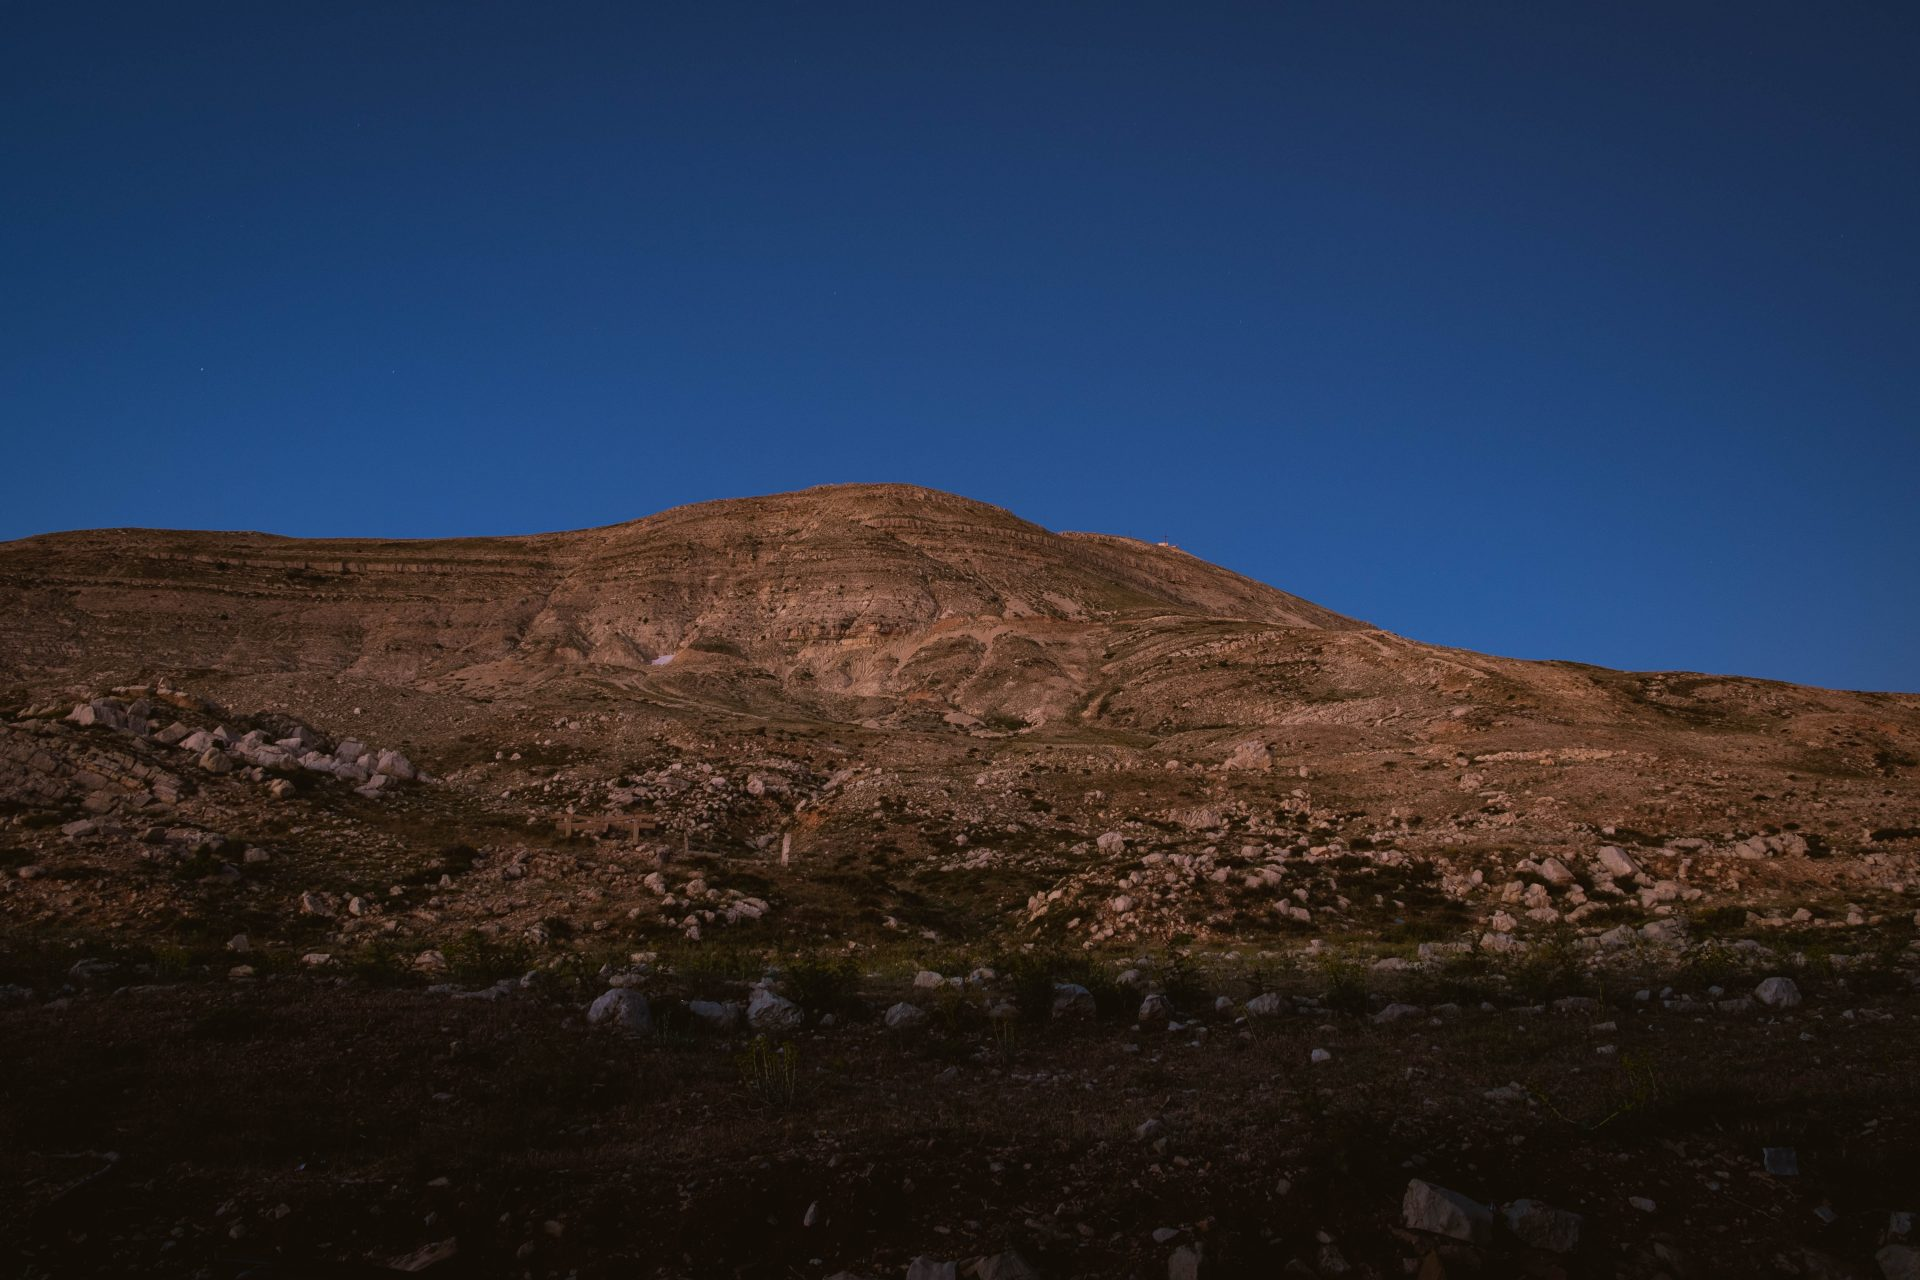 Panoramic view of the lebanese mountain at sunset photo by Jo Kassis